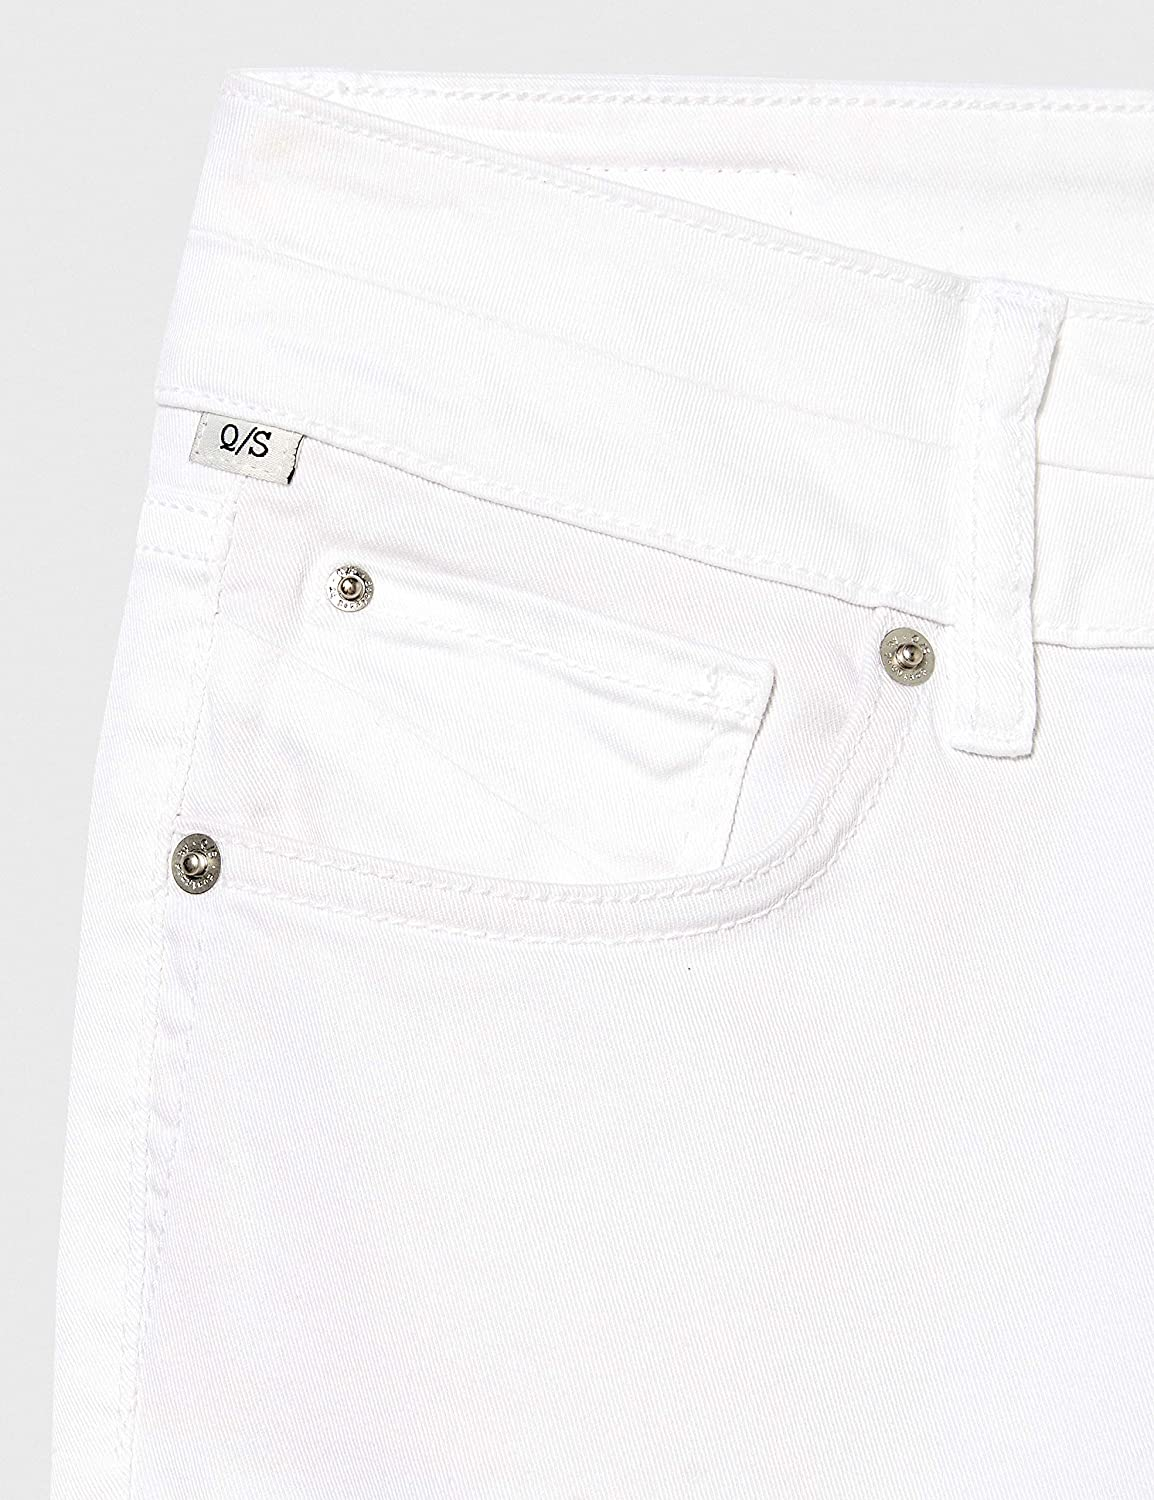 s.Oliver Jeans Donna Q//S designed by